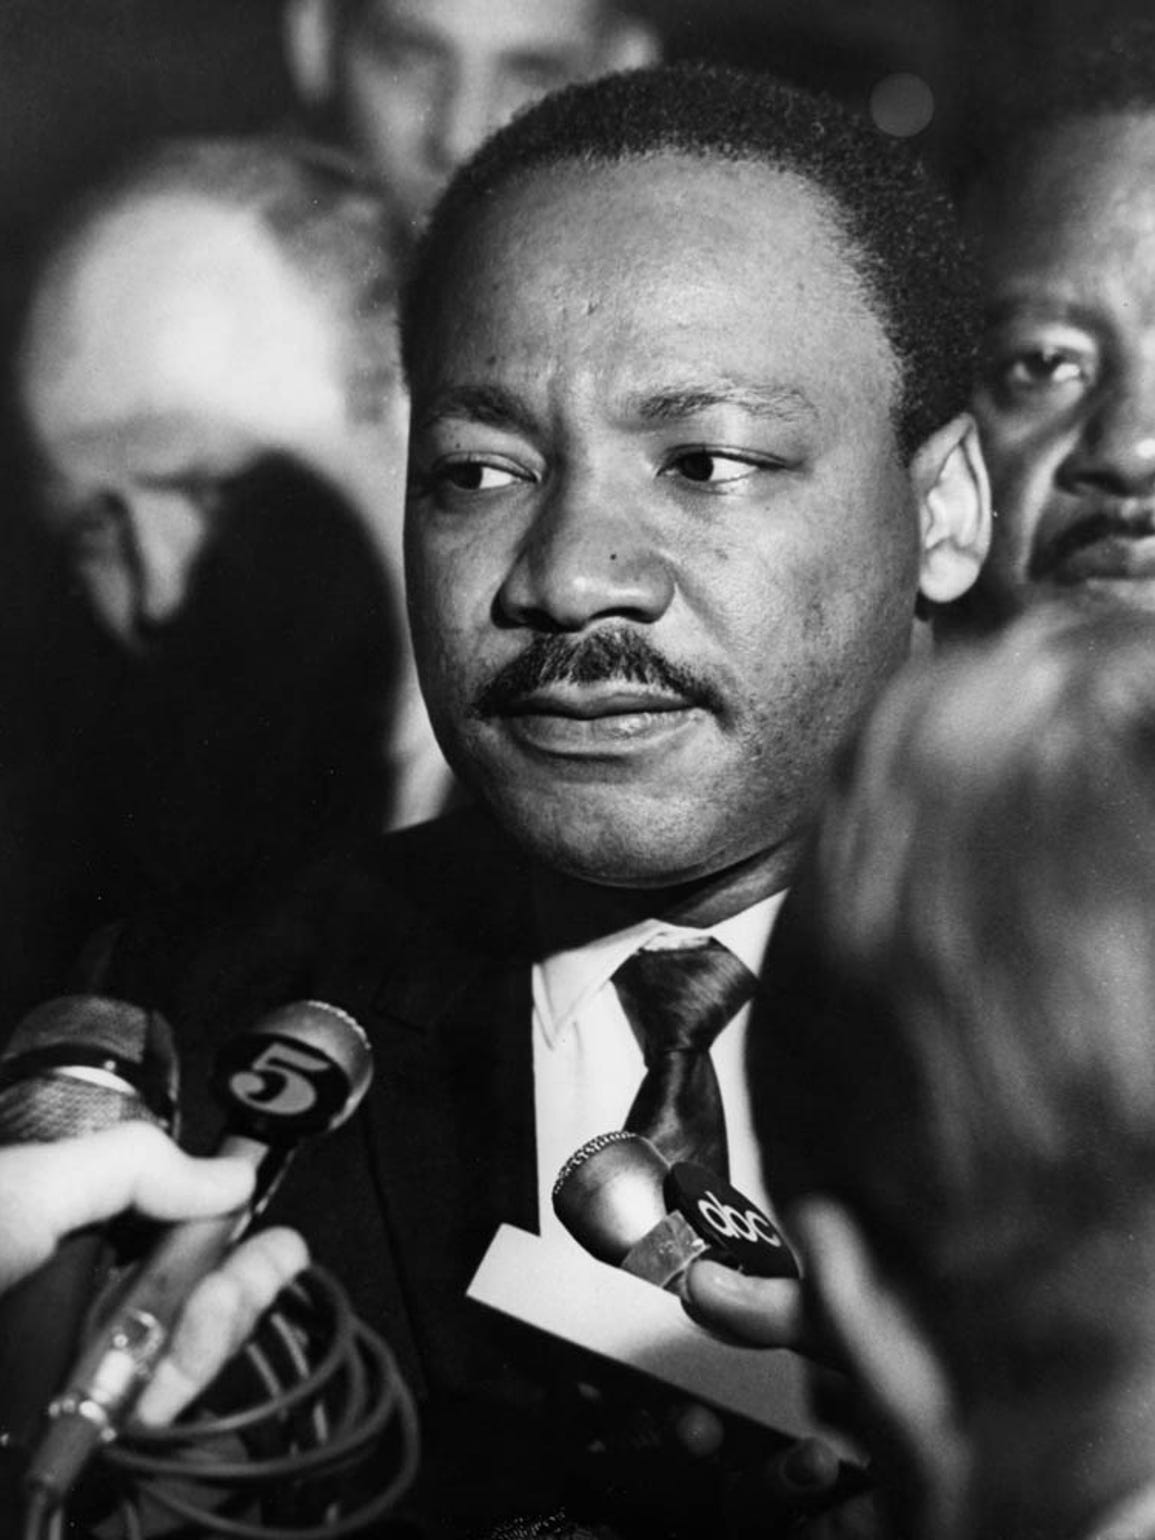 10:40 a.m. Wednesday, April 3, 1968 - Dr. Martin Luther